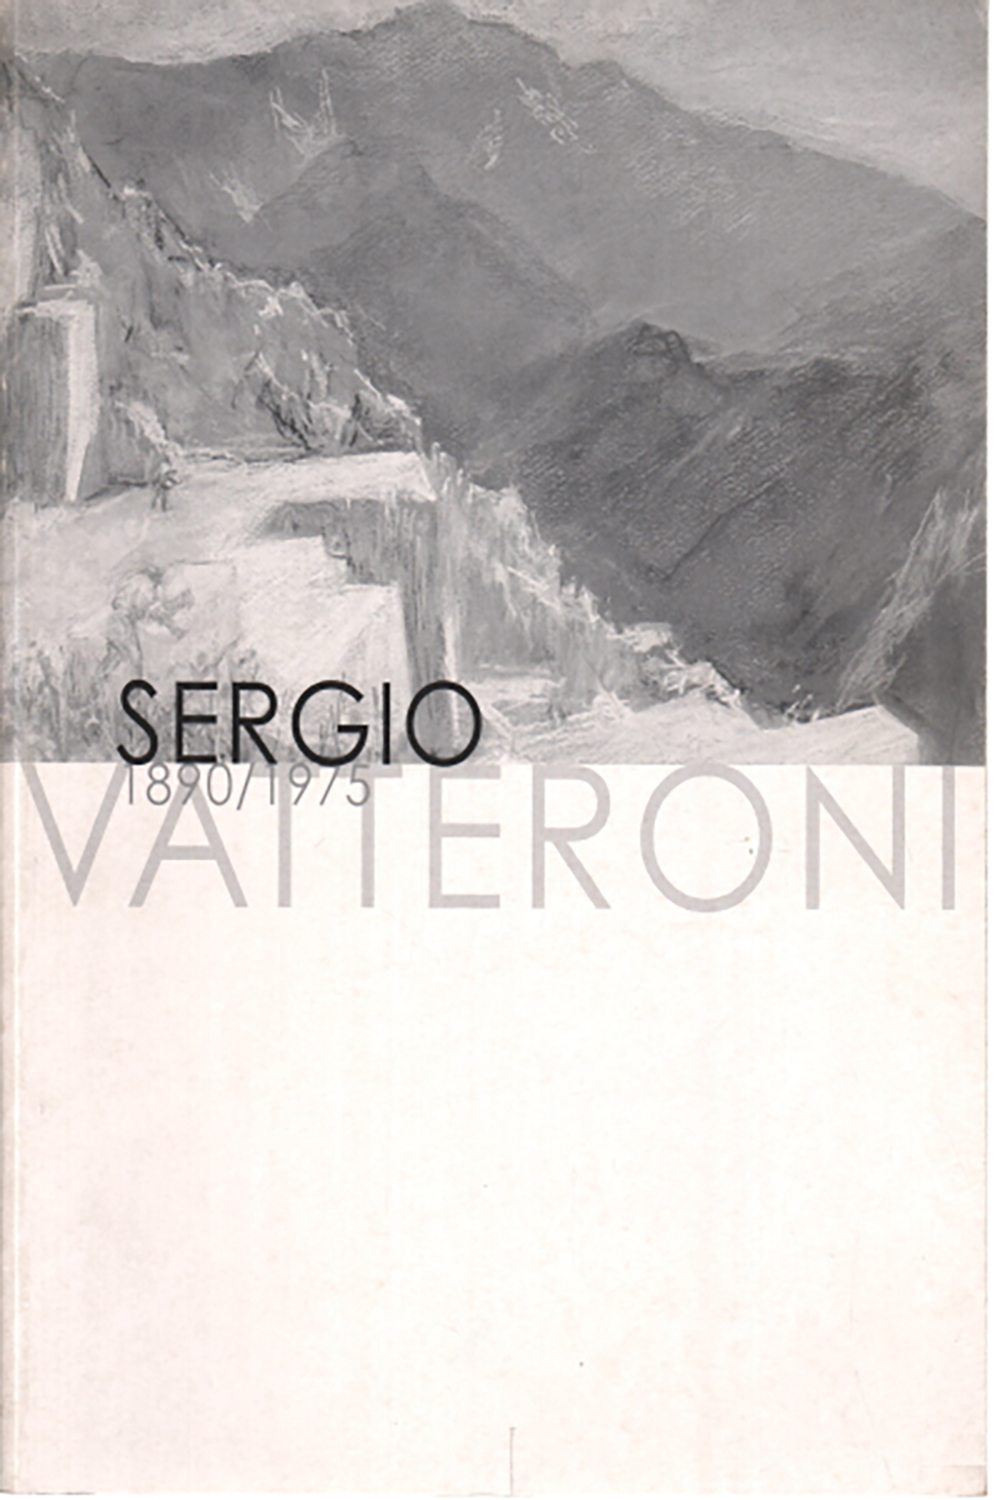 The cover of a book on the art of Sergio Vatteroni